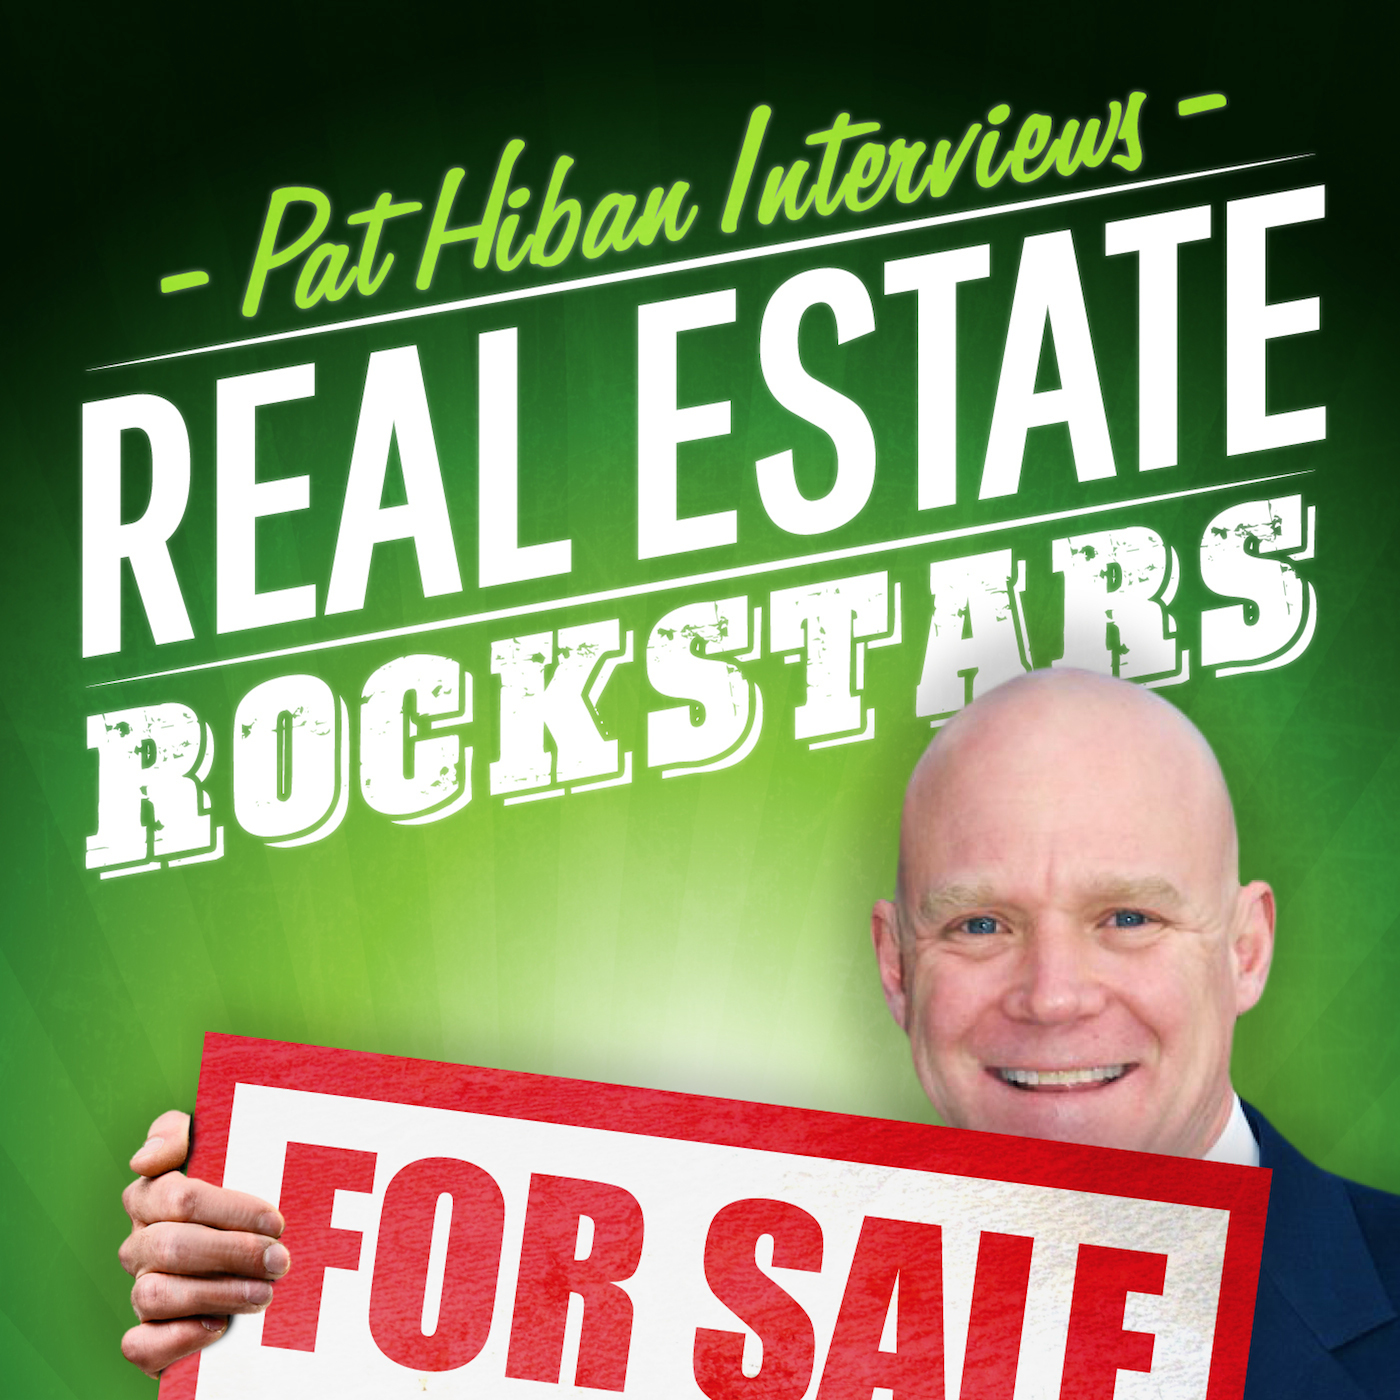 123: Chris Watters: Controlling the consumer experience in real estate